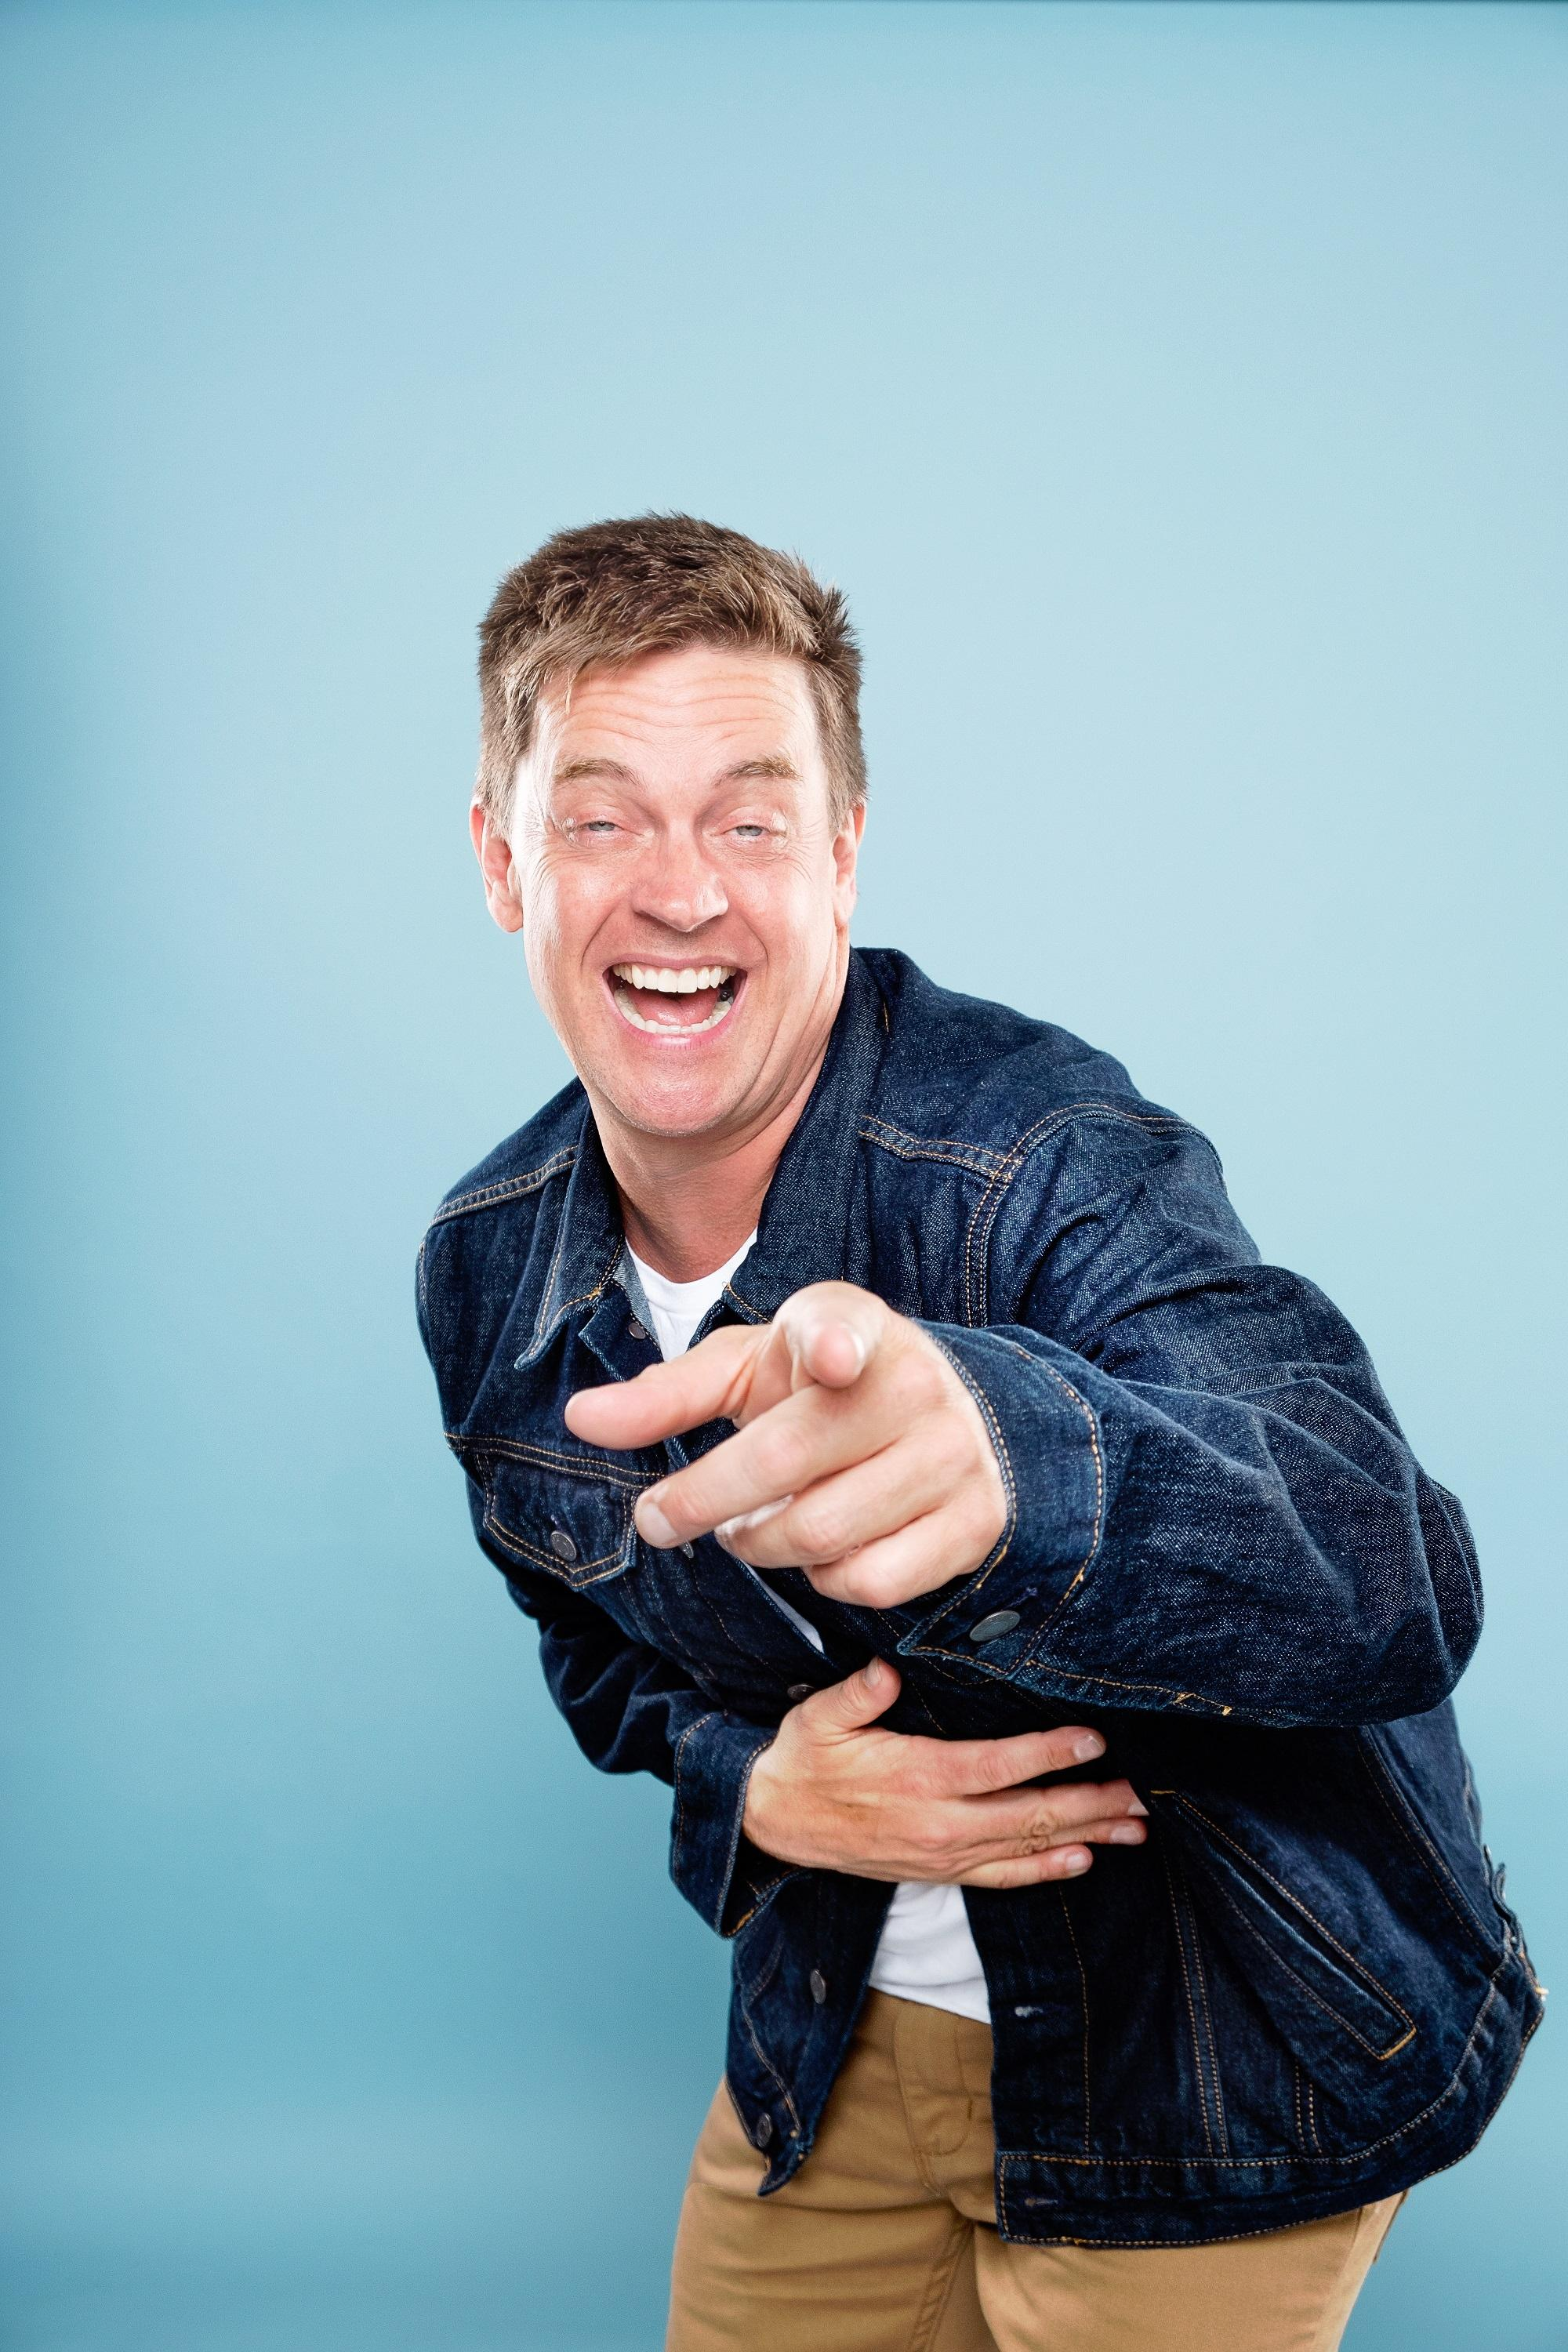 jim breuer aims to be �inspiringly funny� in his comedy